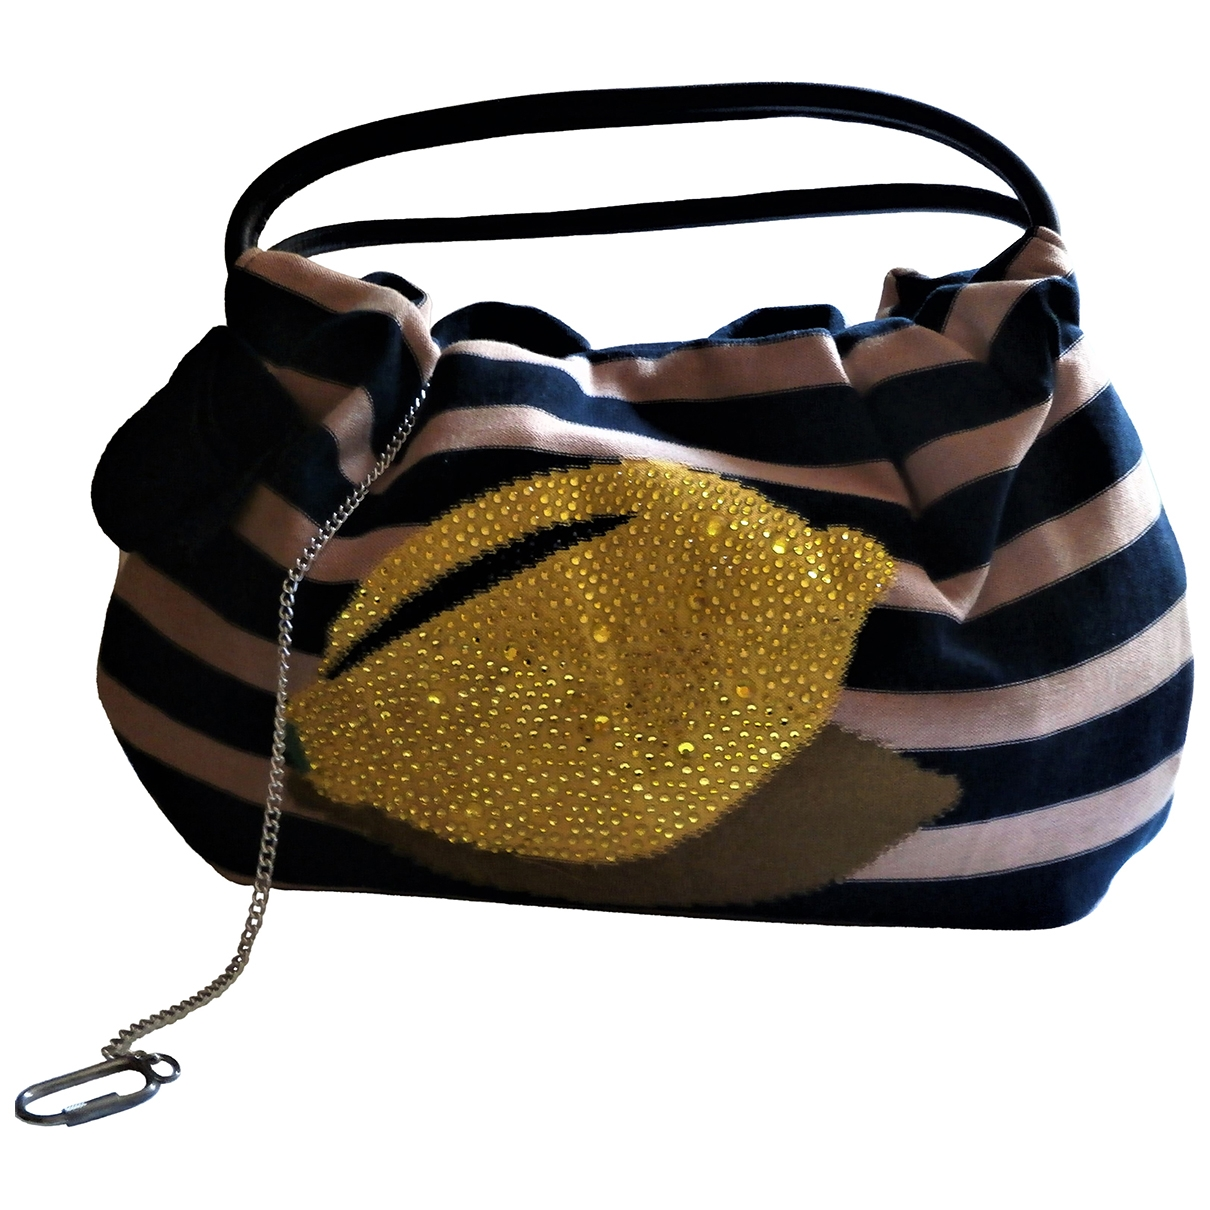 Sonia Rykiel \N Cloth handbag for Women \N